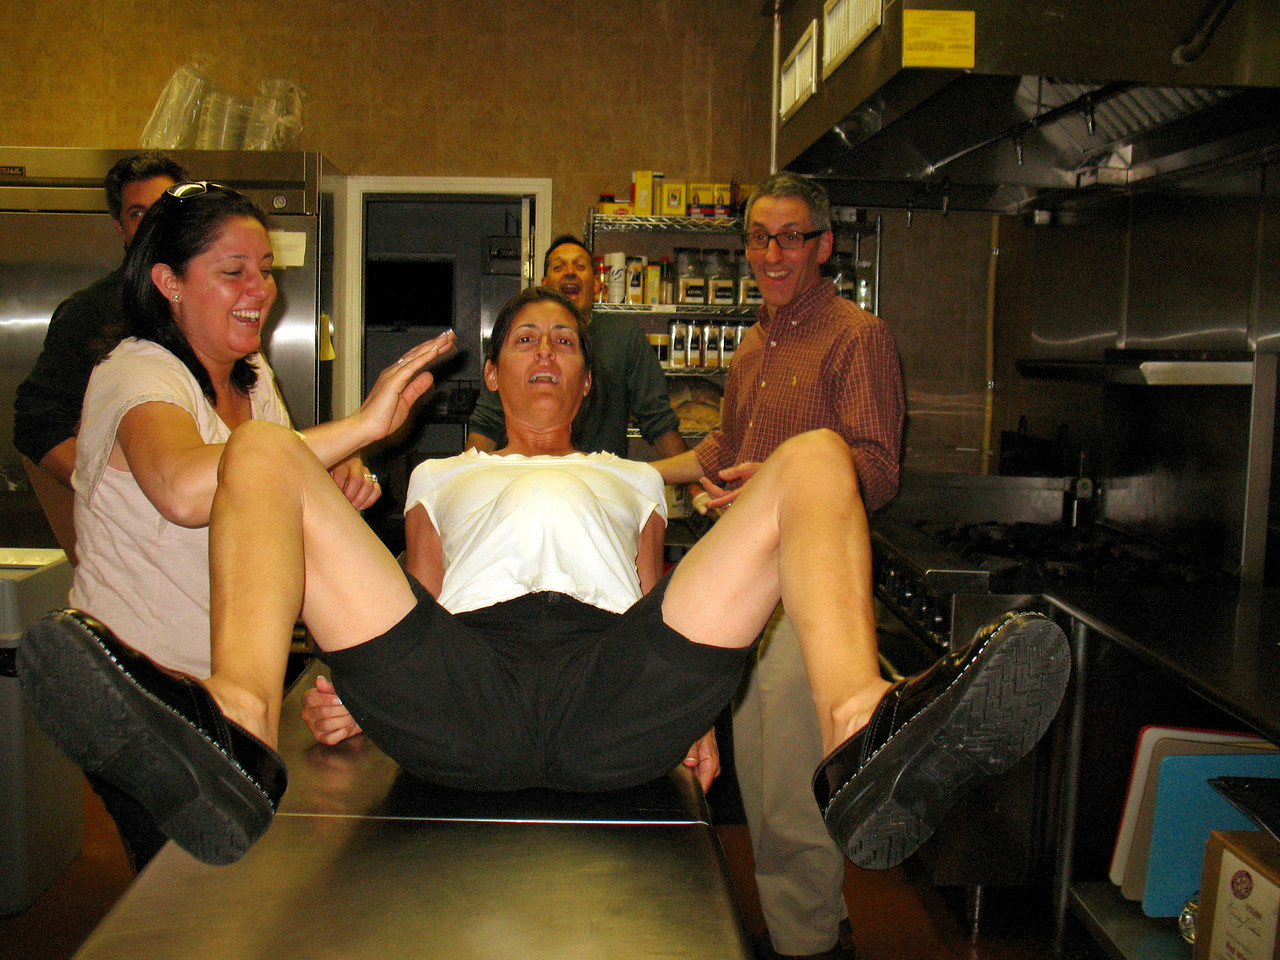 Late Saturday Night: Everyone is tired in the Dish kitchen. Lea giving birth to a mini-soccer ball.